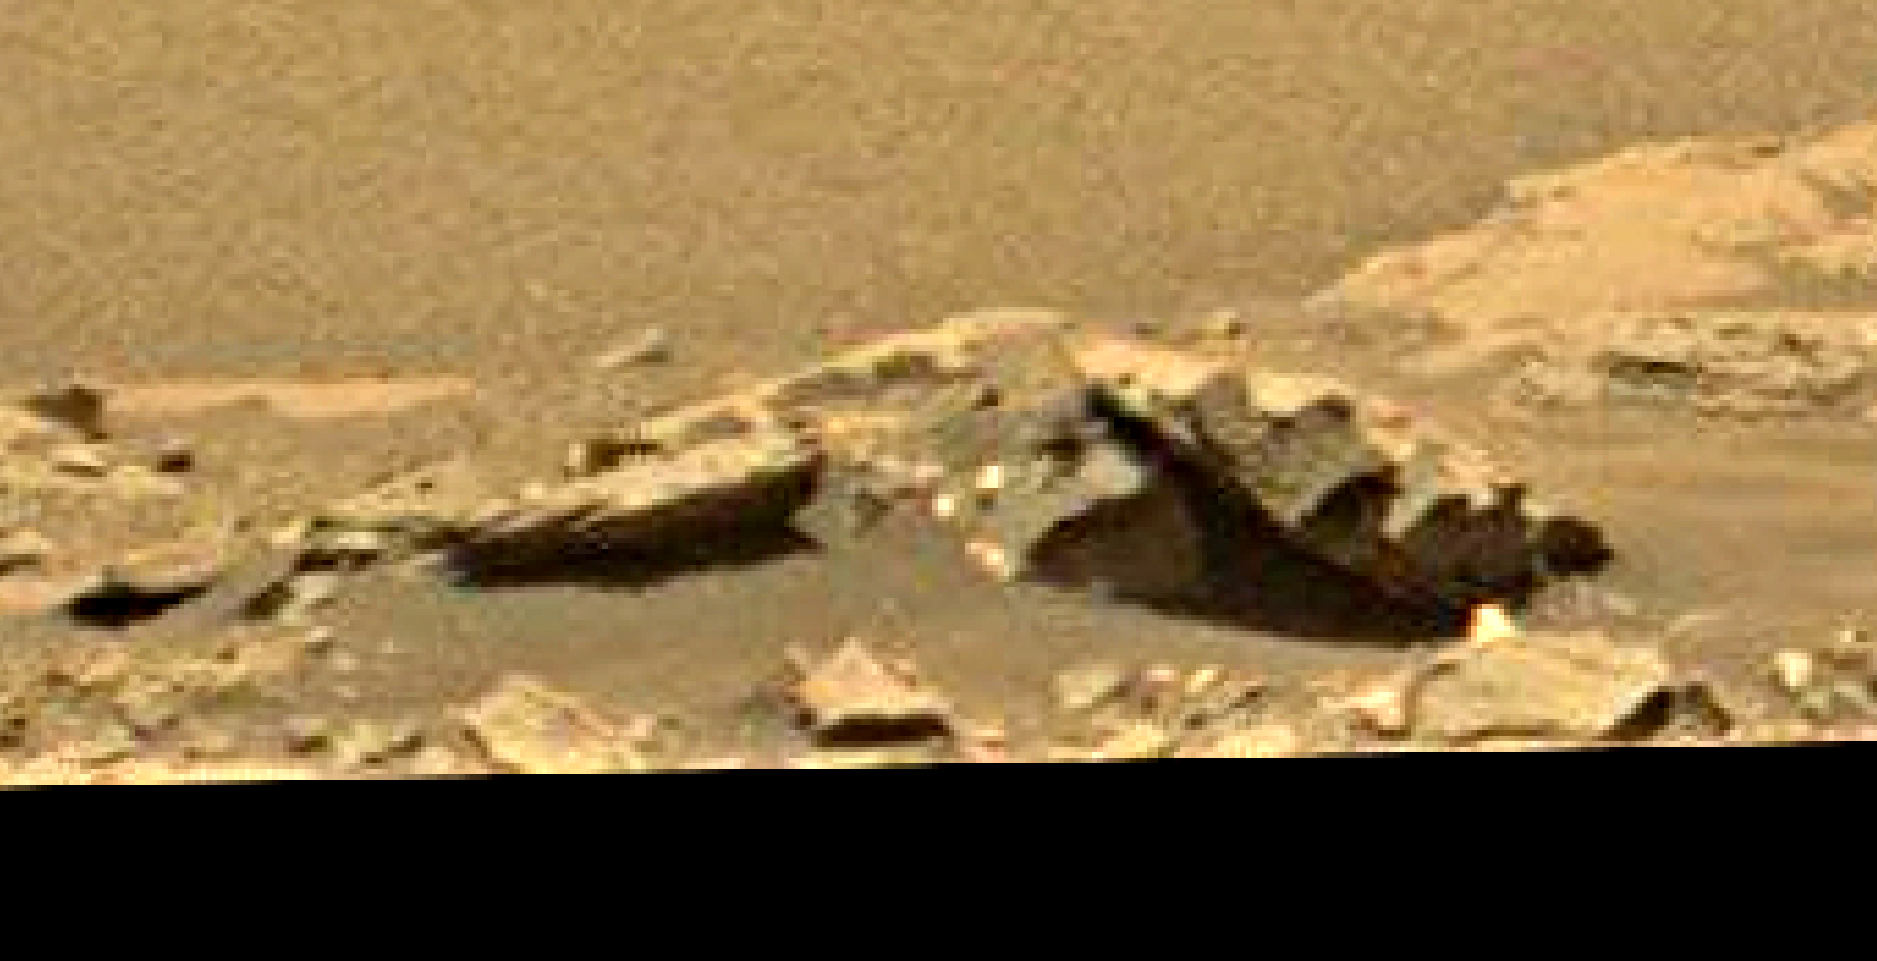 mars sol 1353 anomaly-artifacts 11 was life on mars